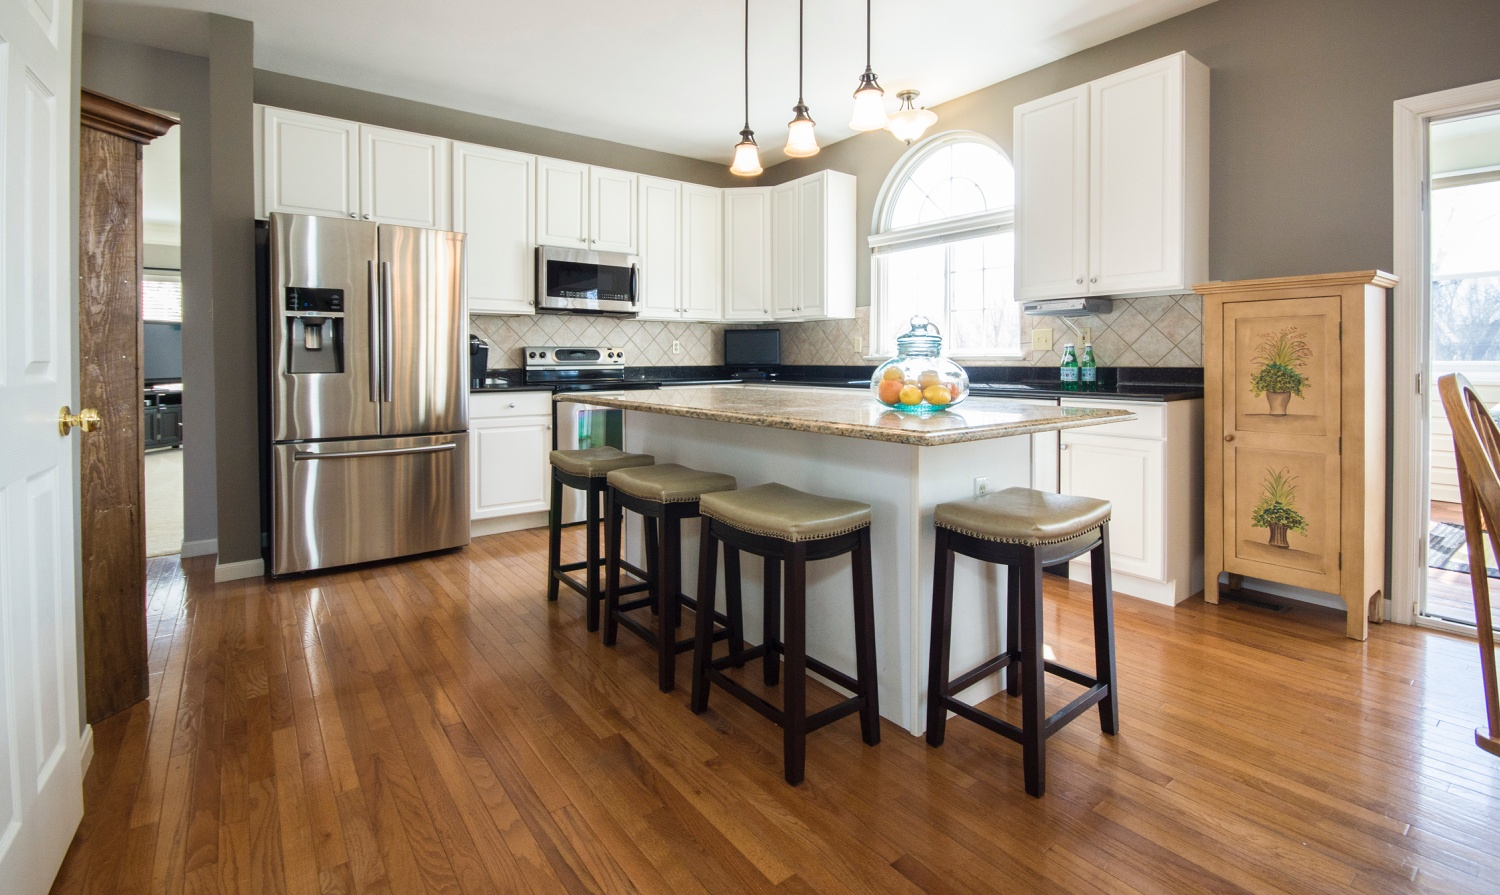 Do The Ever Popular Granite Countertops Increase Home Value